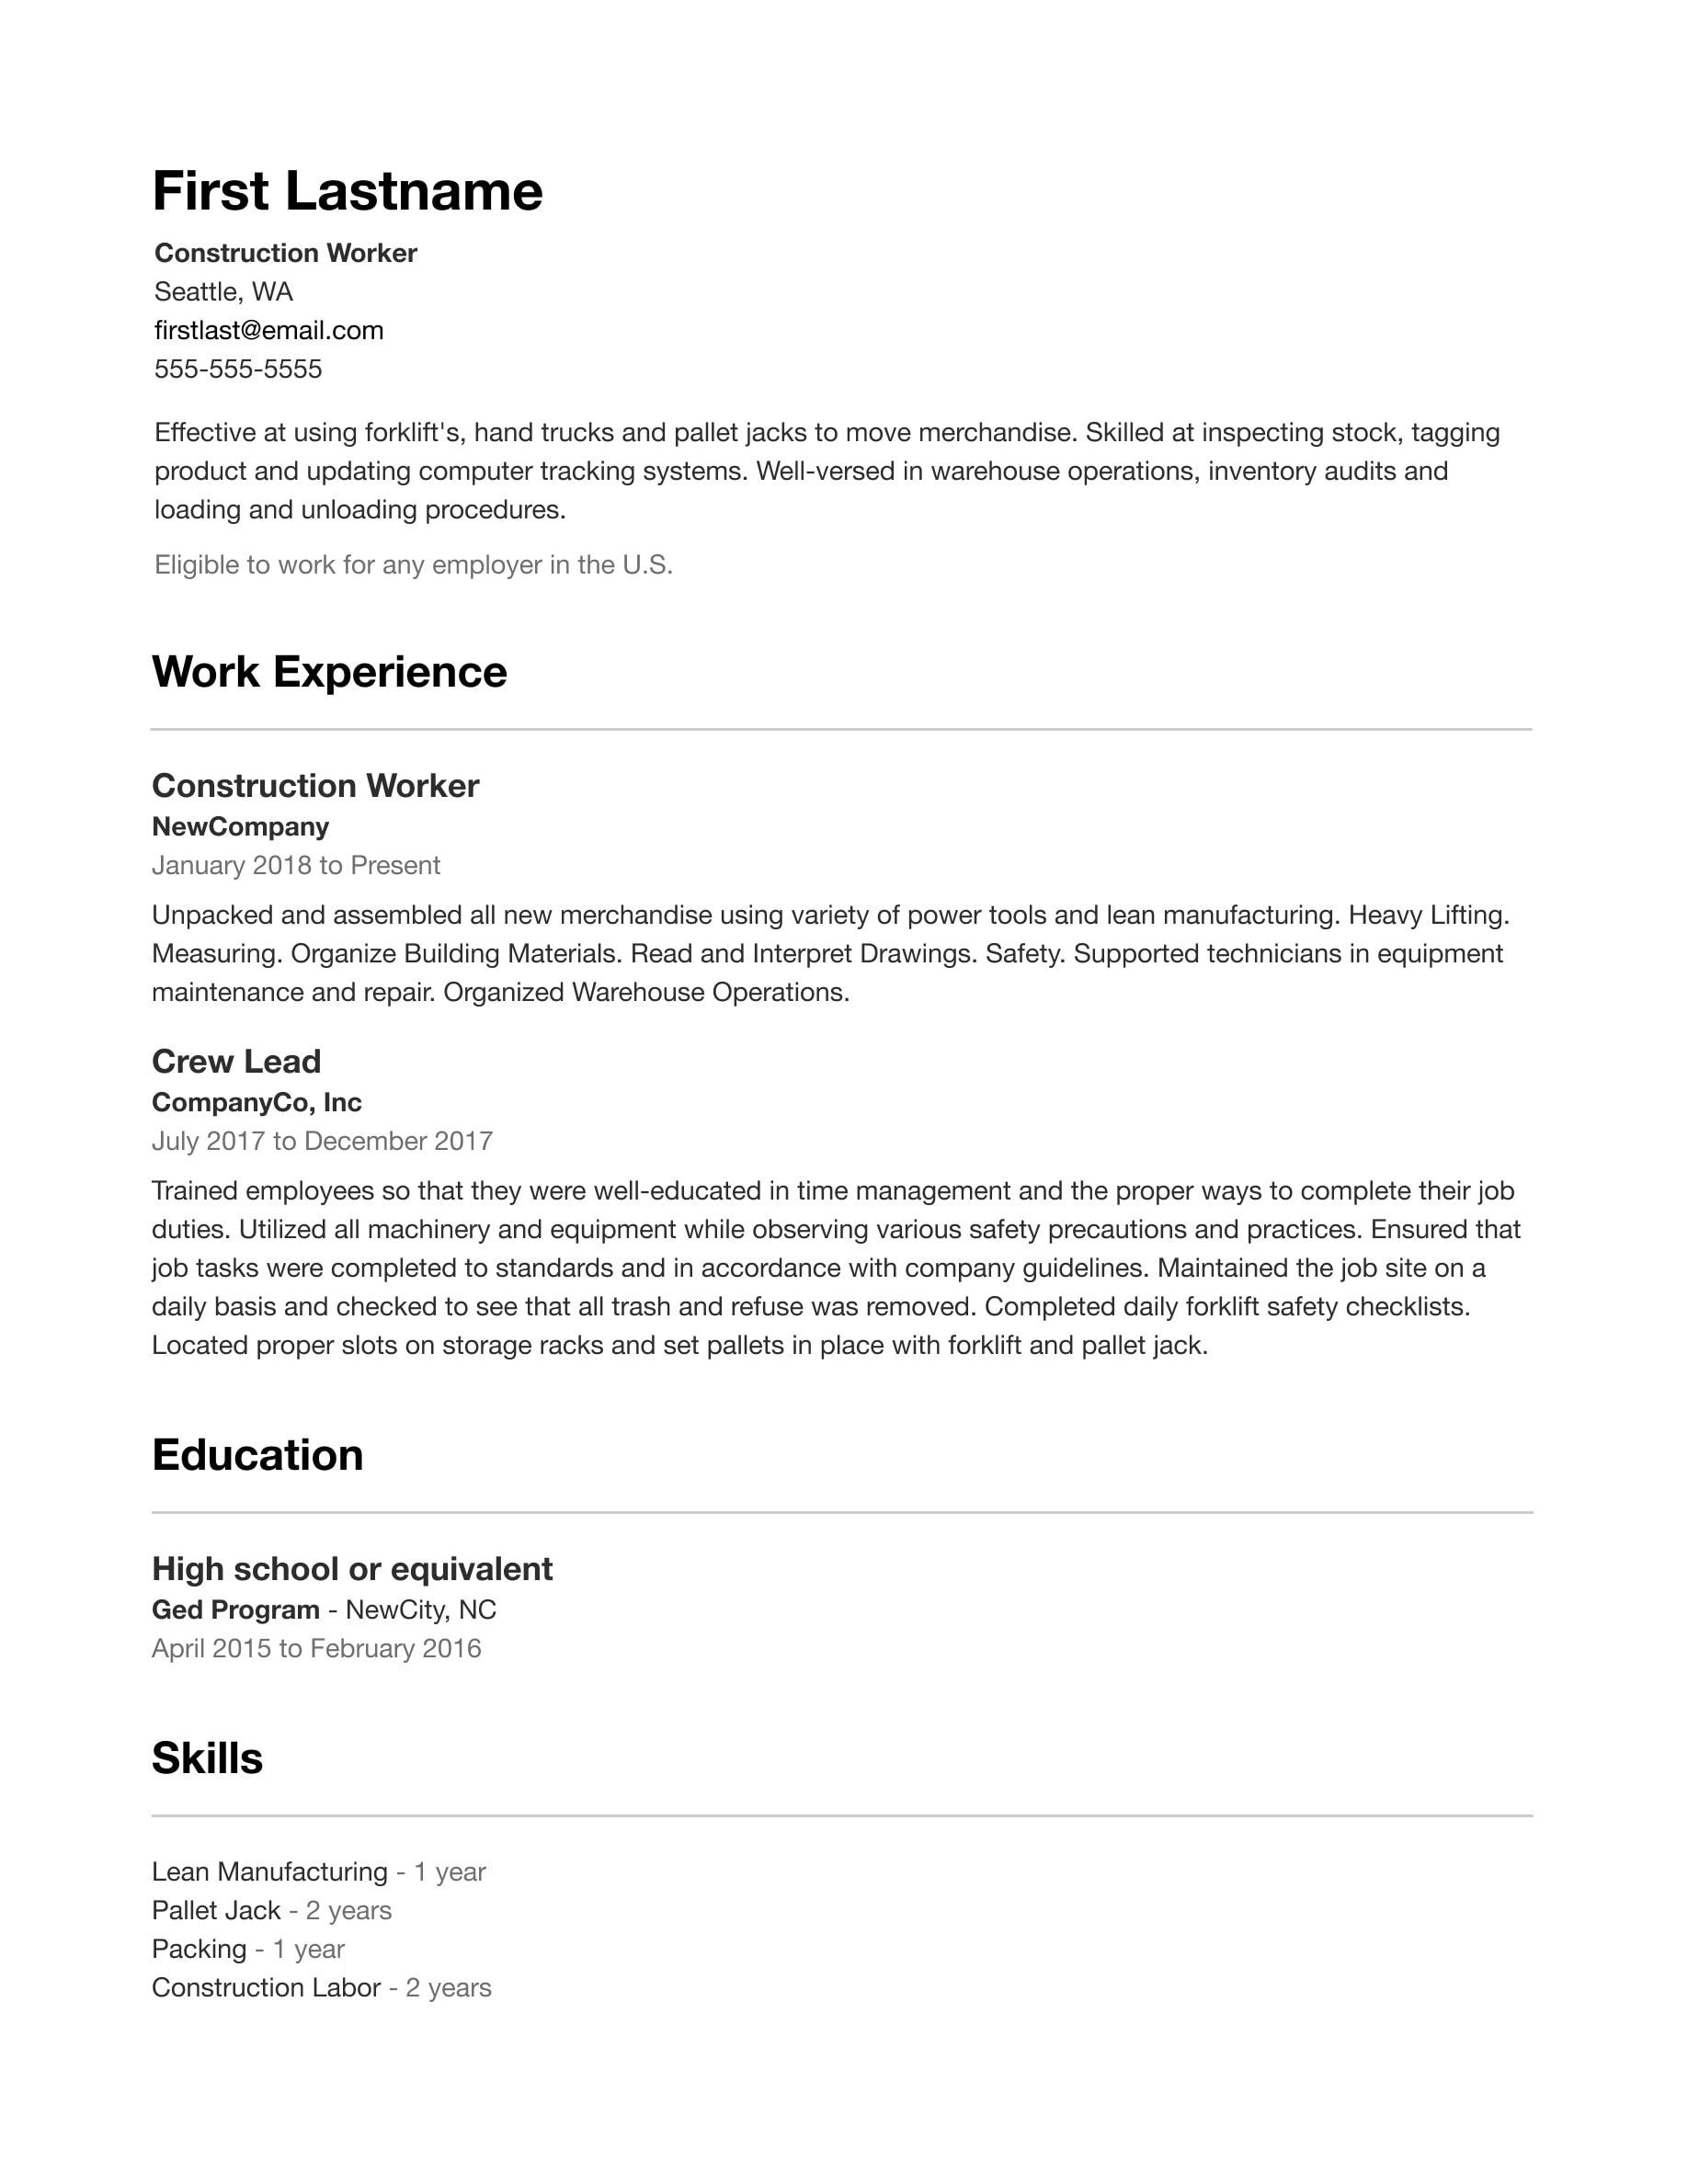 tailor professional resume made just for you by lulucram get certified advanced writer Resume Get Professional Resume Made